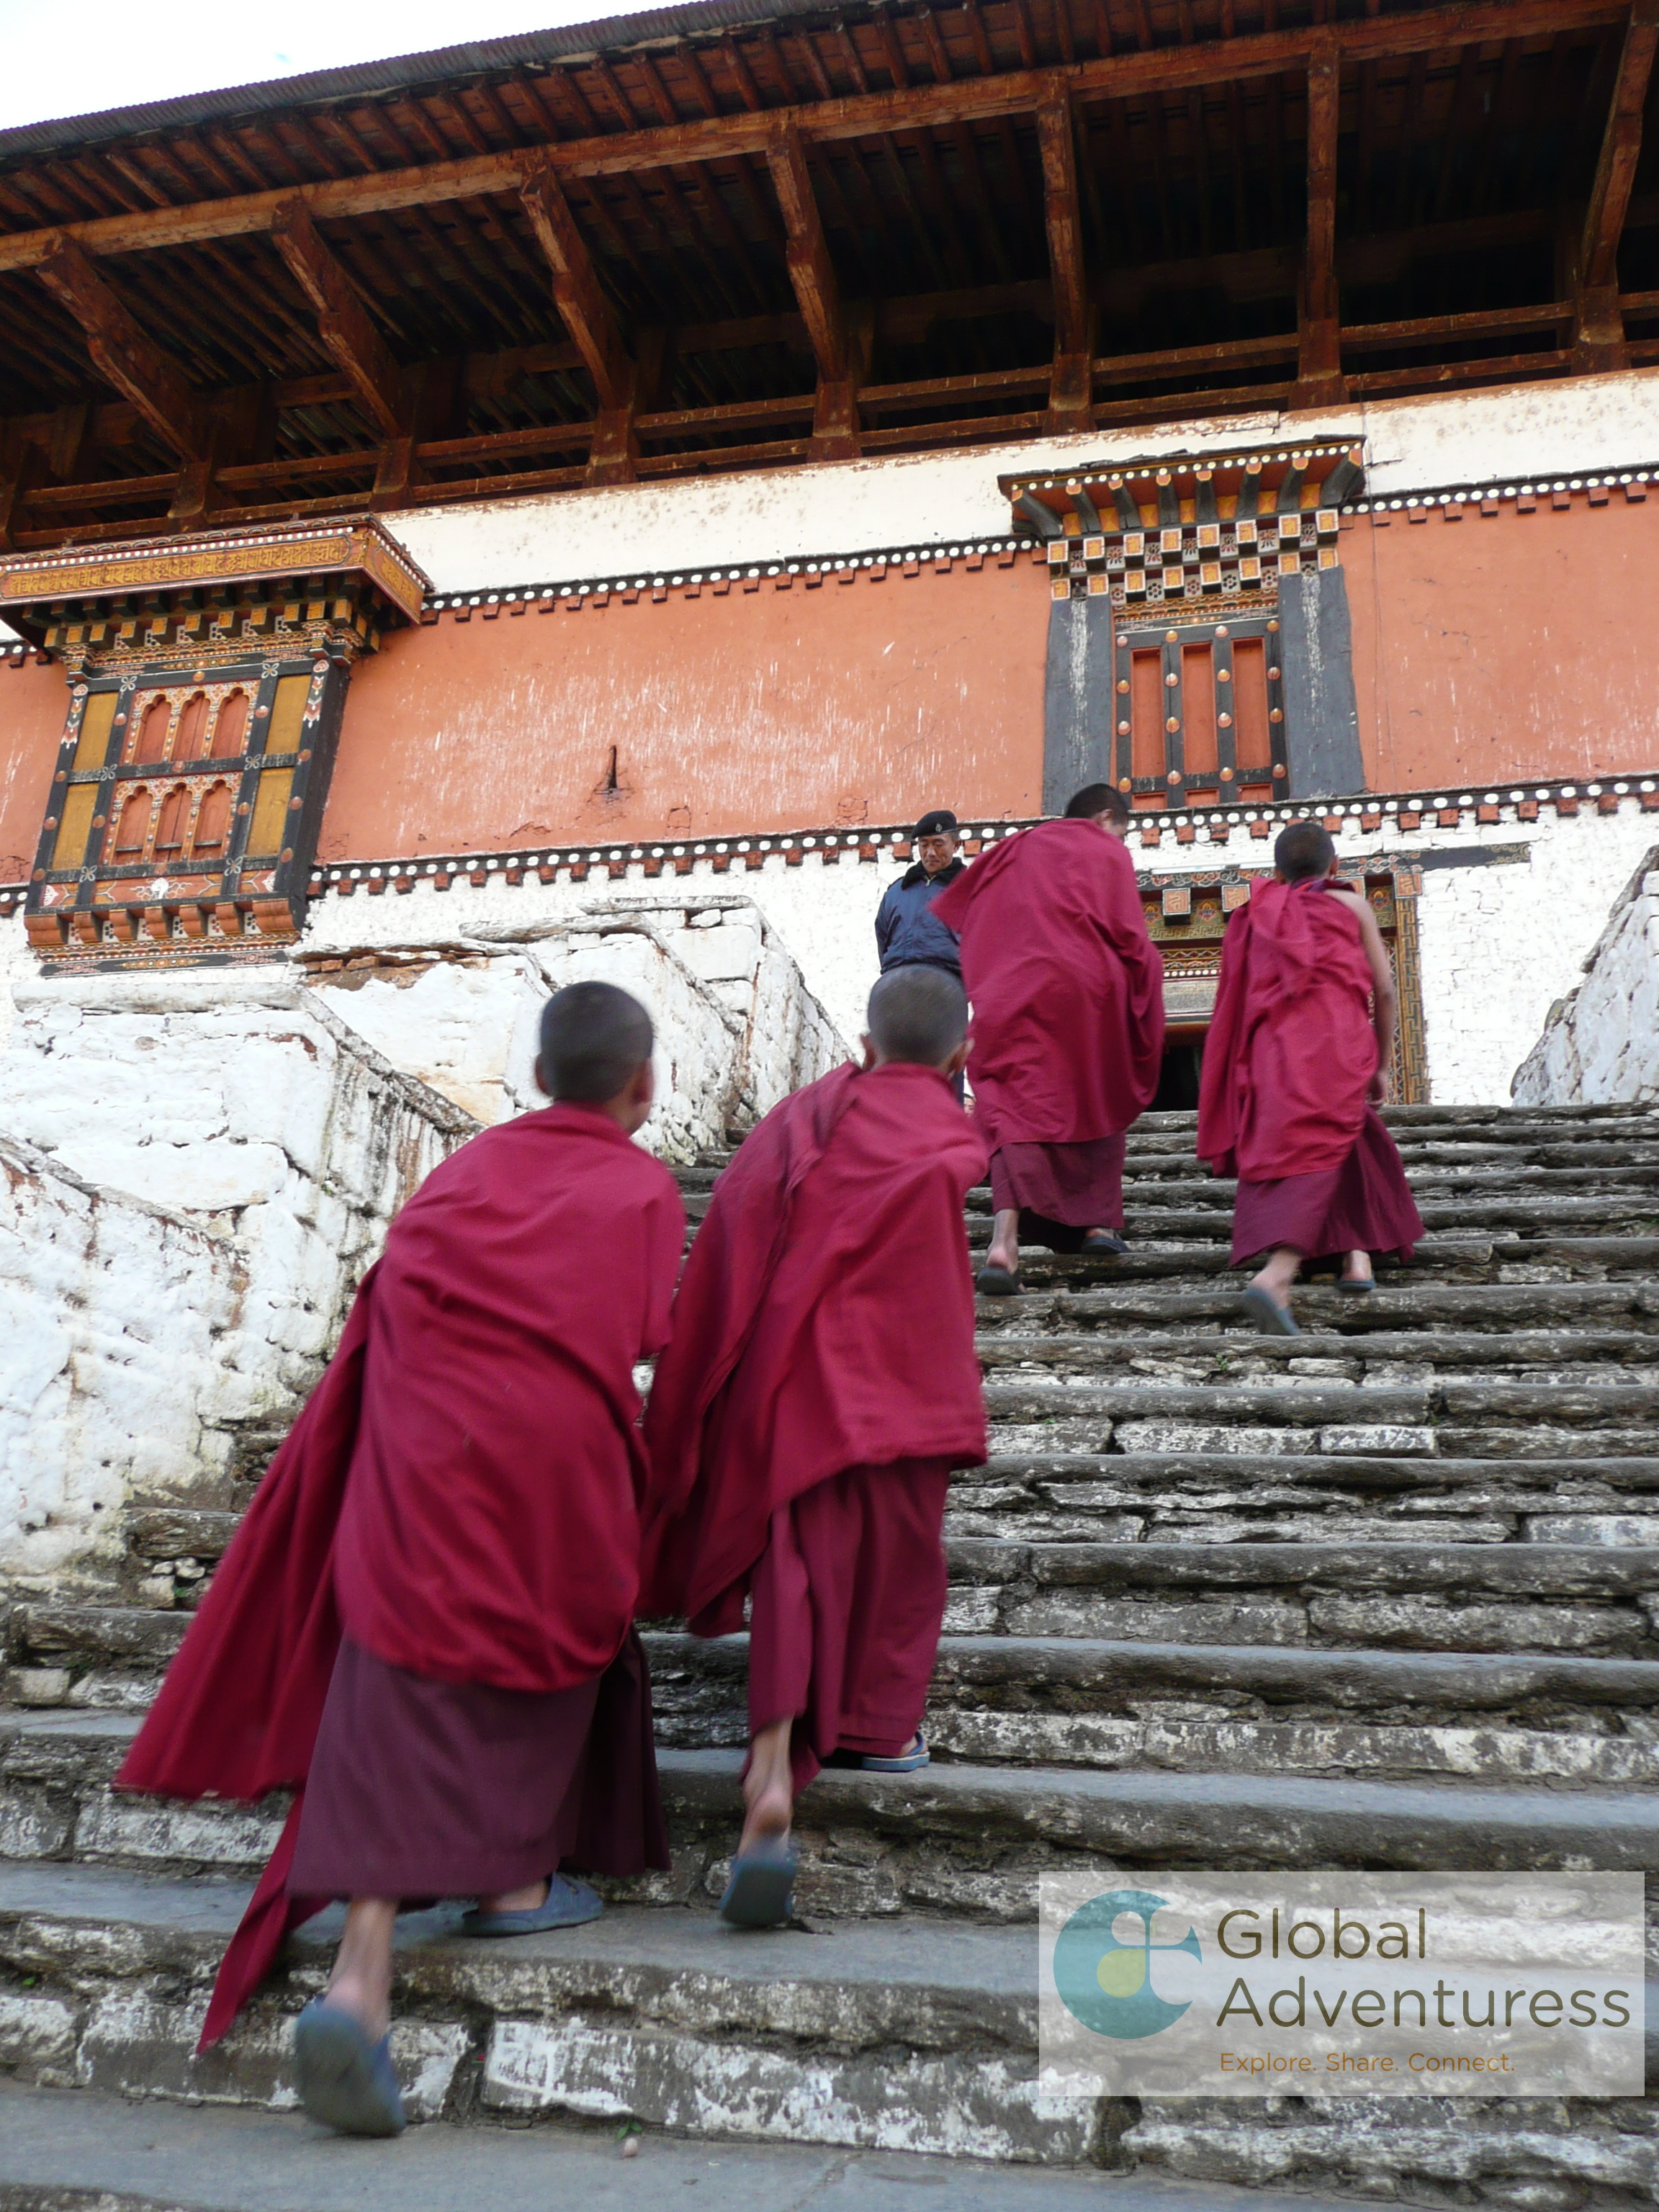 Our Journey to the Kingdom of Bhutan